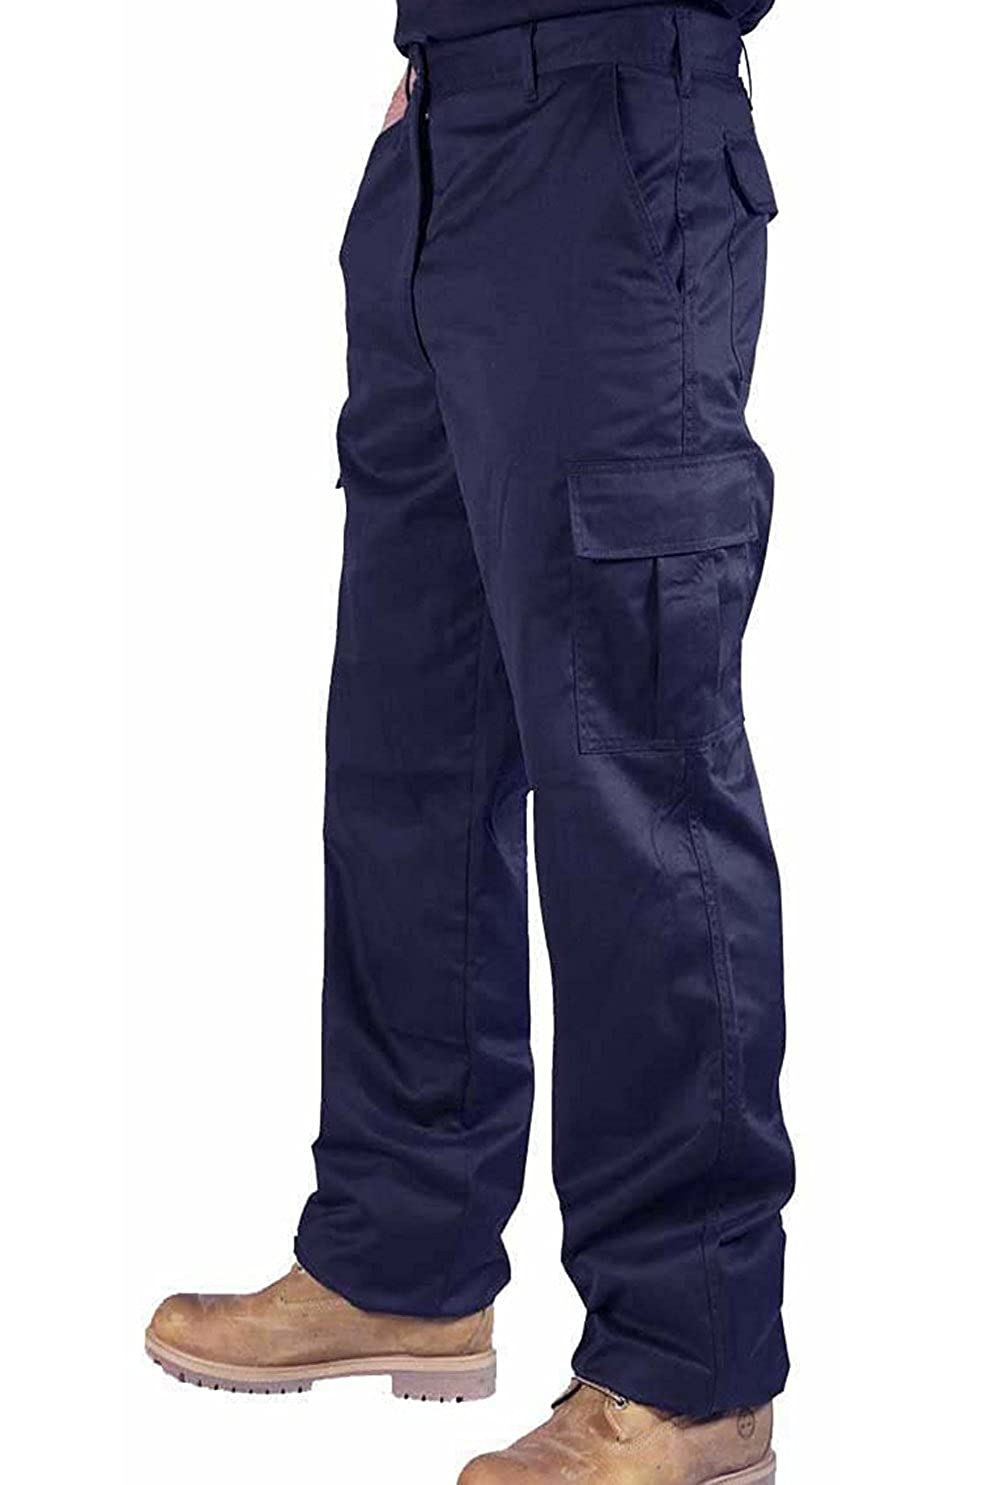 TS2 Mens Cargo Combat Work Black Navy Trousers Sizes 28'- 50' with Knee Pad Pockets Parent-TS2B2